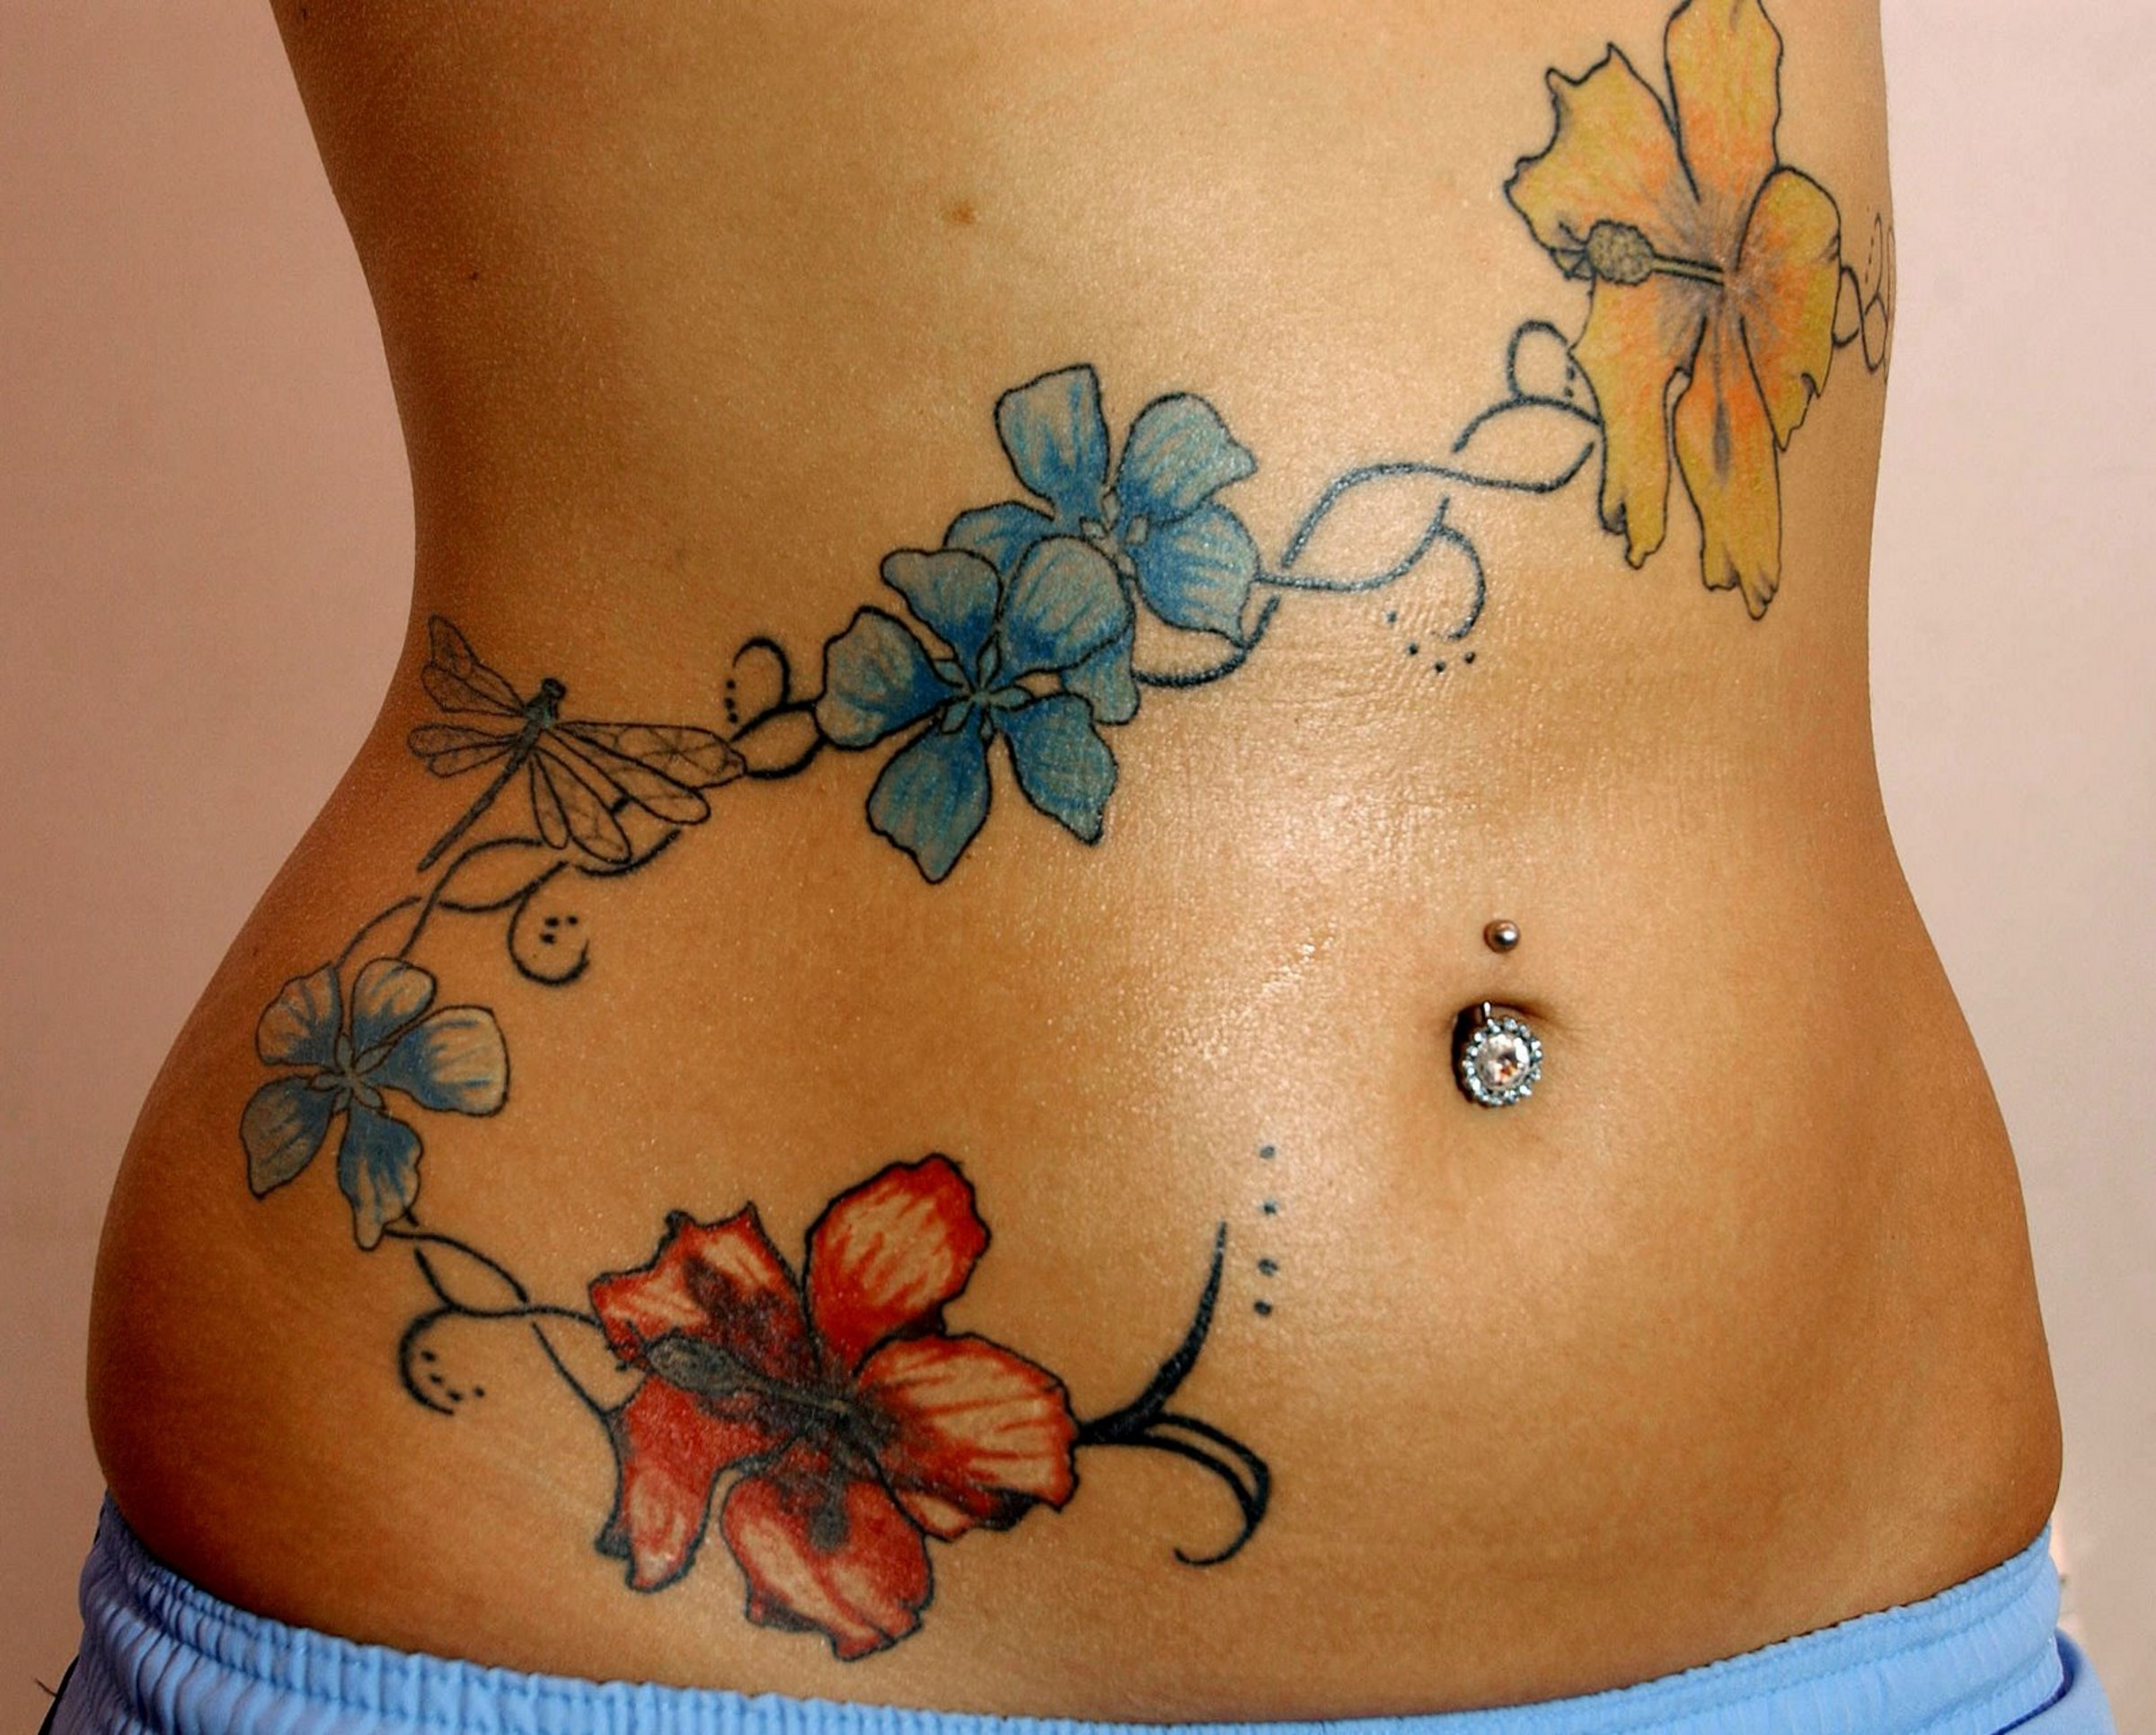 flower tattoos can come in different designs persons tattooing flowers